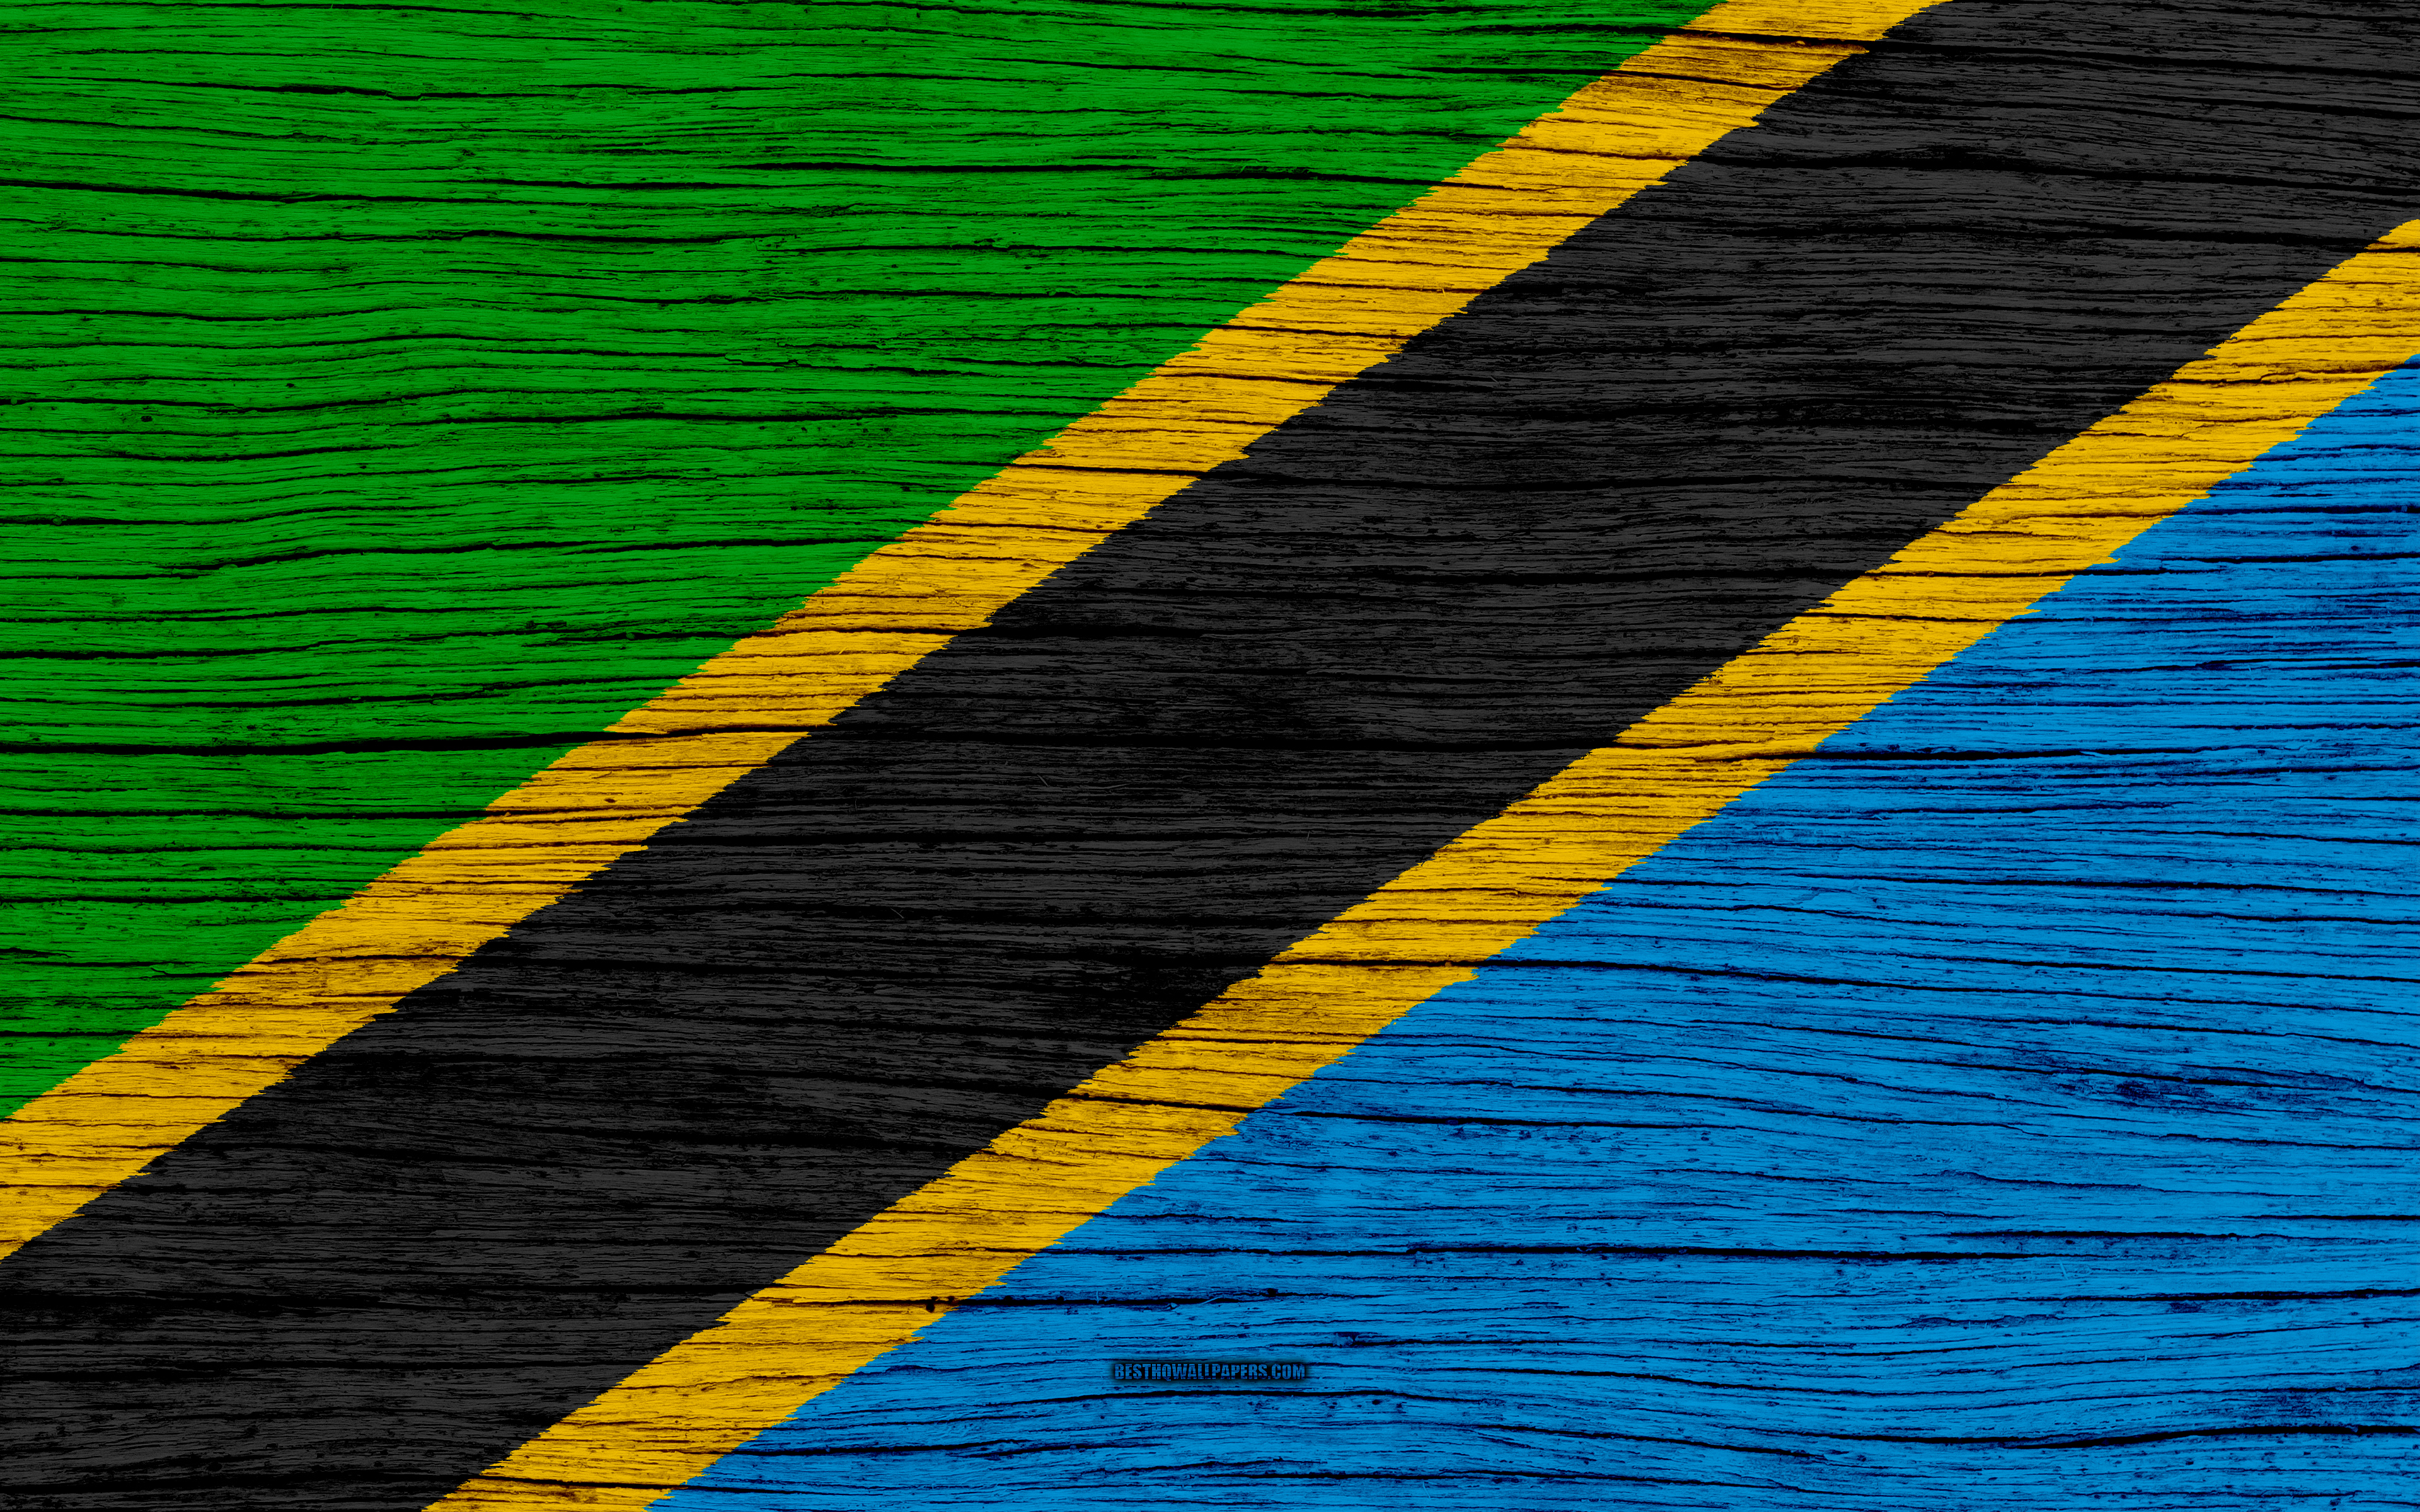 3840x2400 Download wallpapers Flag of Tanzania, 4k, Africa, wooden ...